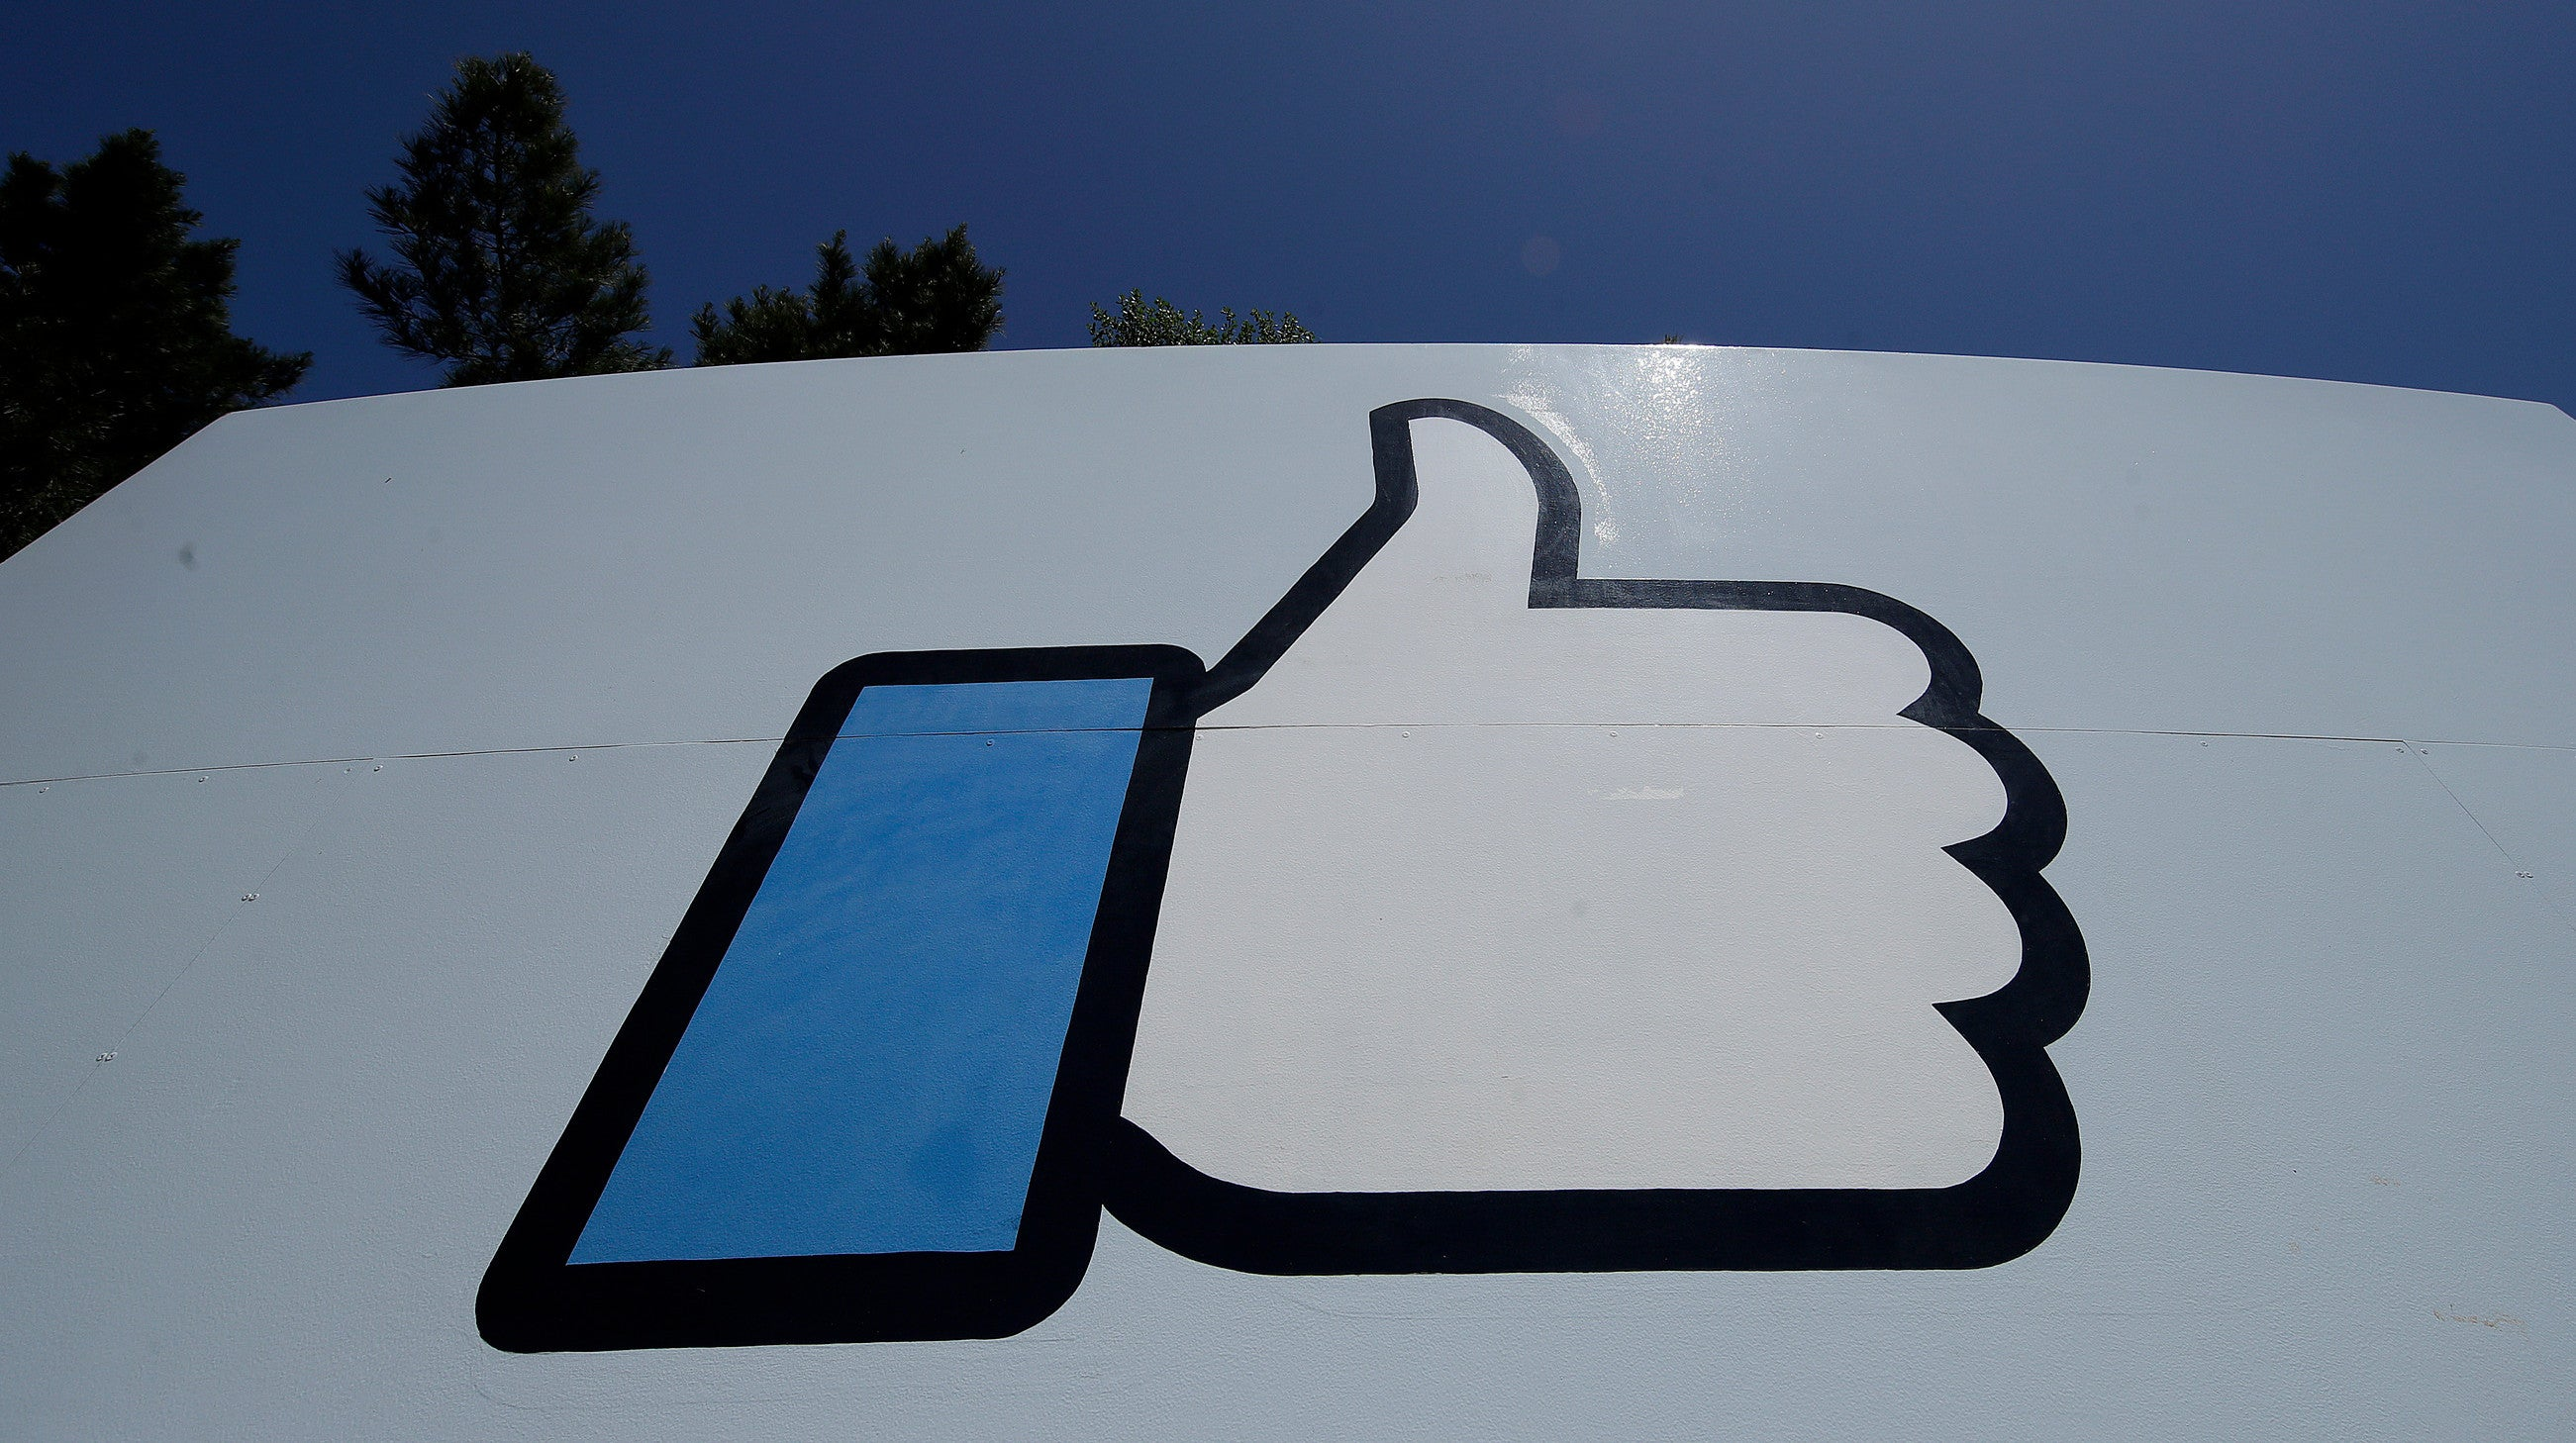 Facebook Launches App That Pays Users For Data — Reminding Us What We Give Away For Free